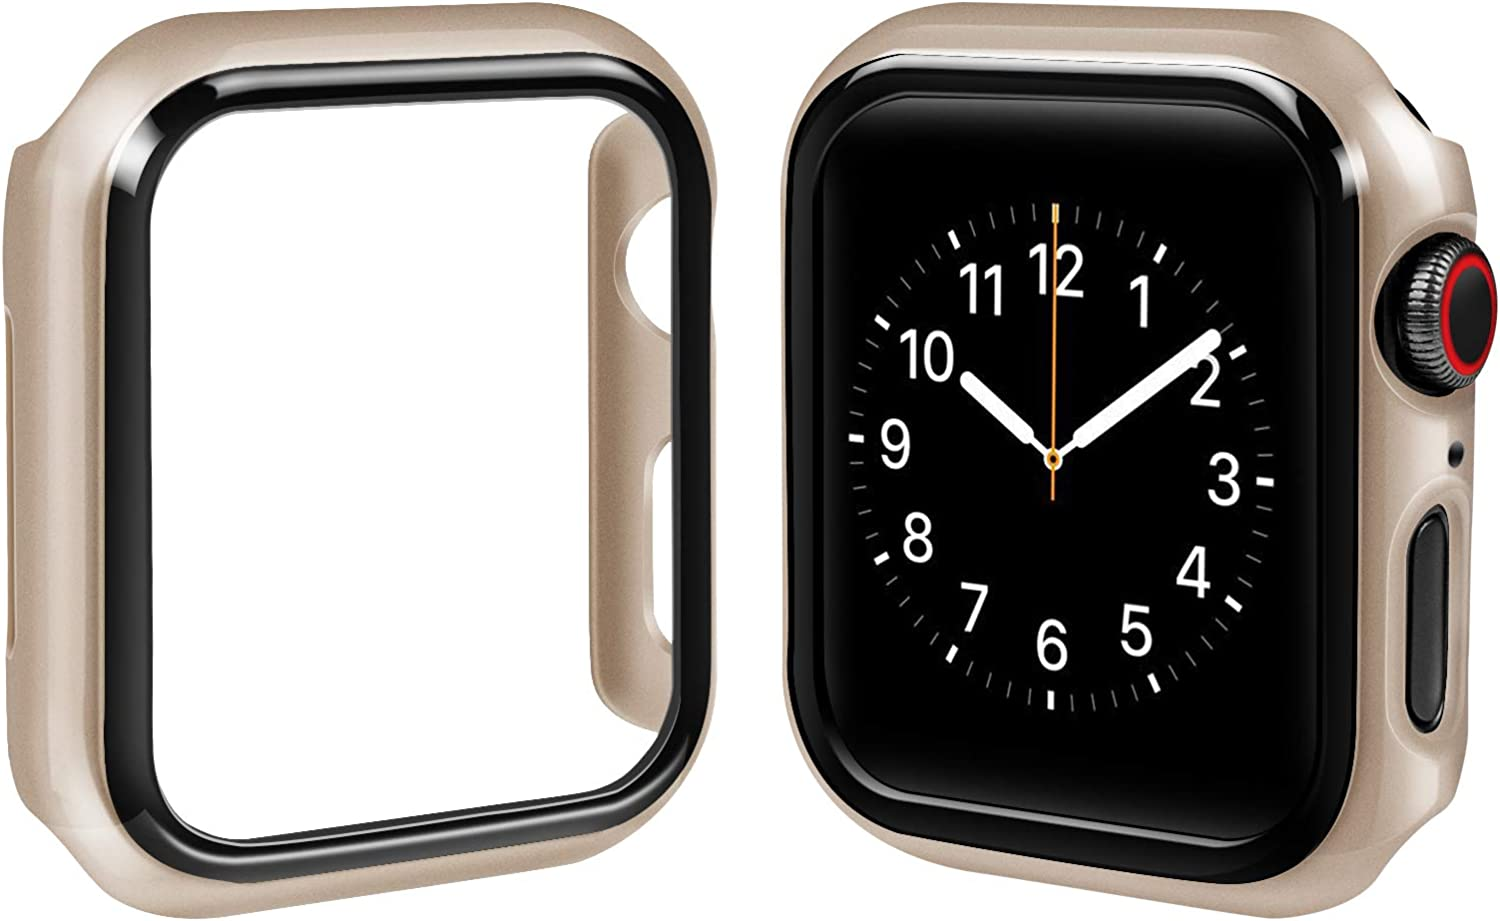 top4cus PC 44mm Case Compatible with Apple Watch Slim Lightweight Electroplated Protective Iwatch Case Protector Bumper, for Series SE Series 6 Series 5 Series 4 (Gold, 44mm)